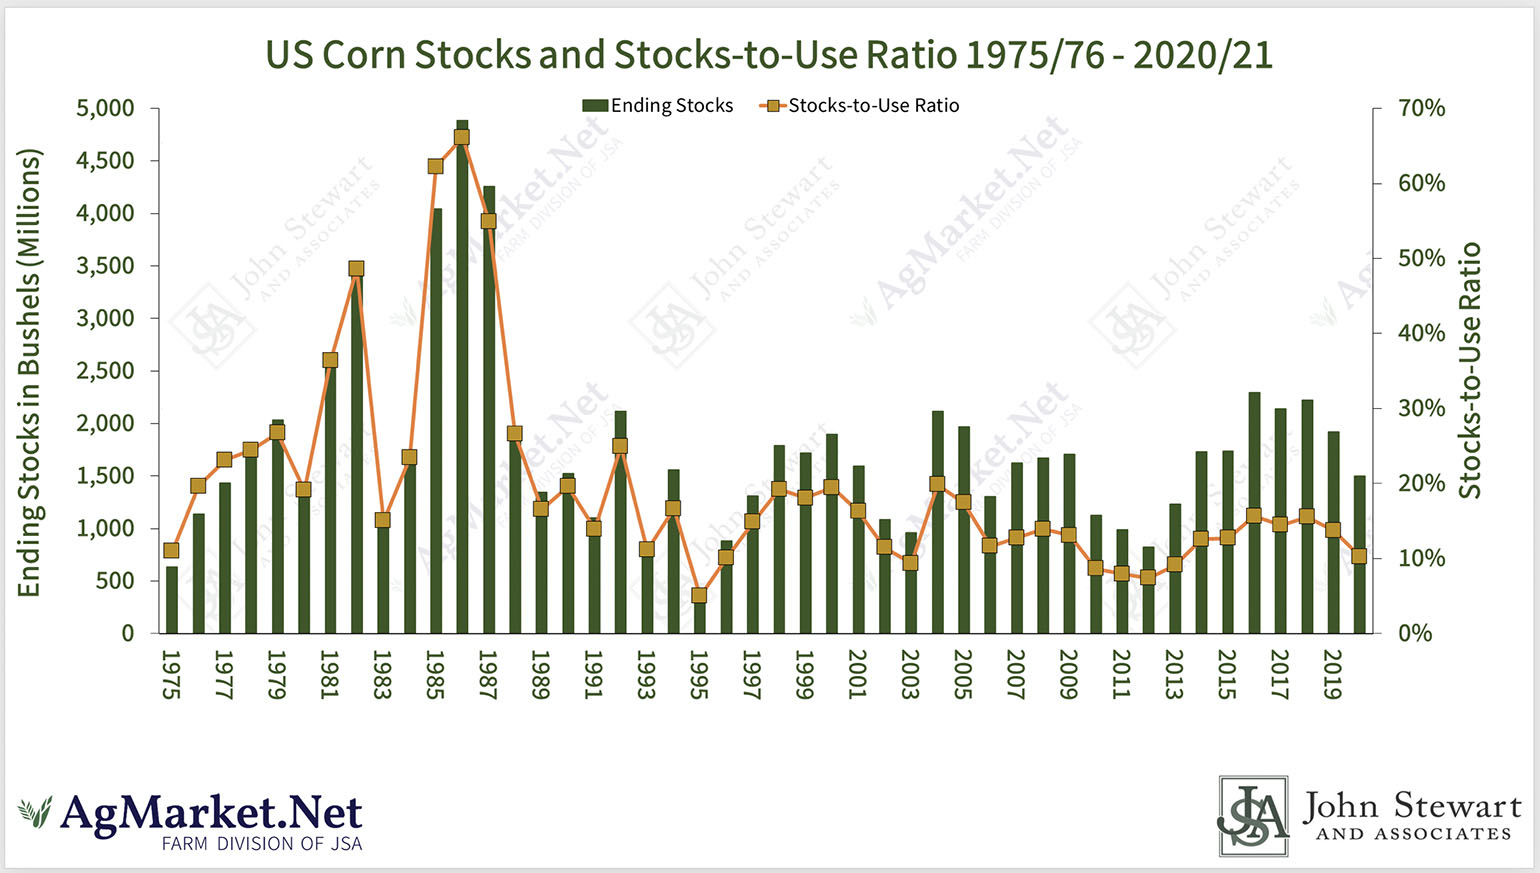 U.S. Corn Stocks & Stocks To Use Ratio